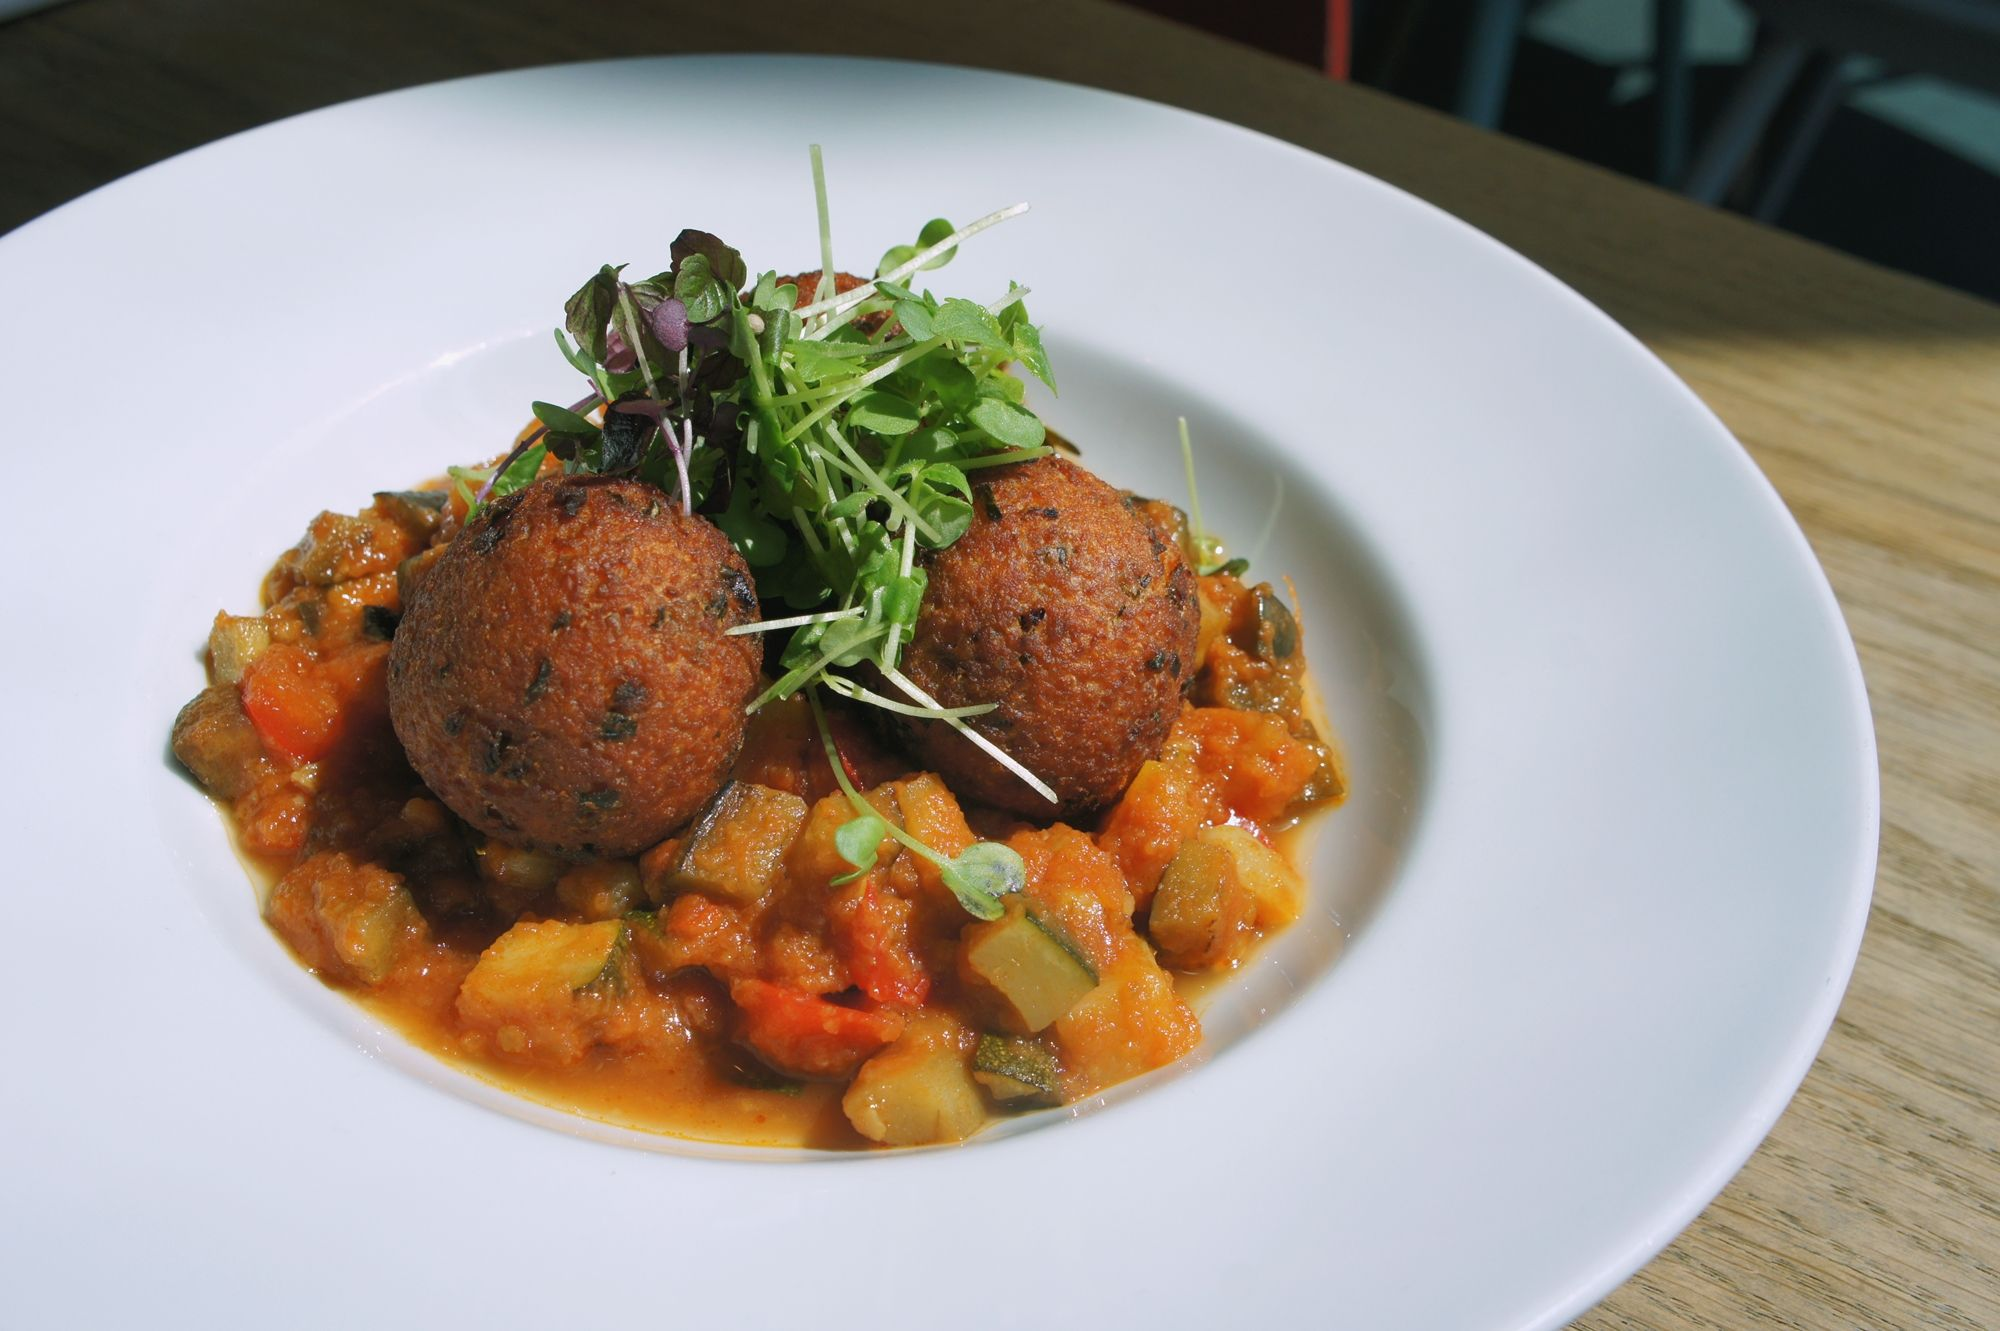 Fried goat's cheese balls / warm ratatouille  #superconceptspace #goatcheese #ratatouille #comfortfood #lunch #berlinfood